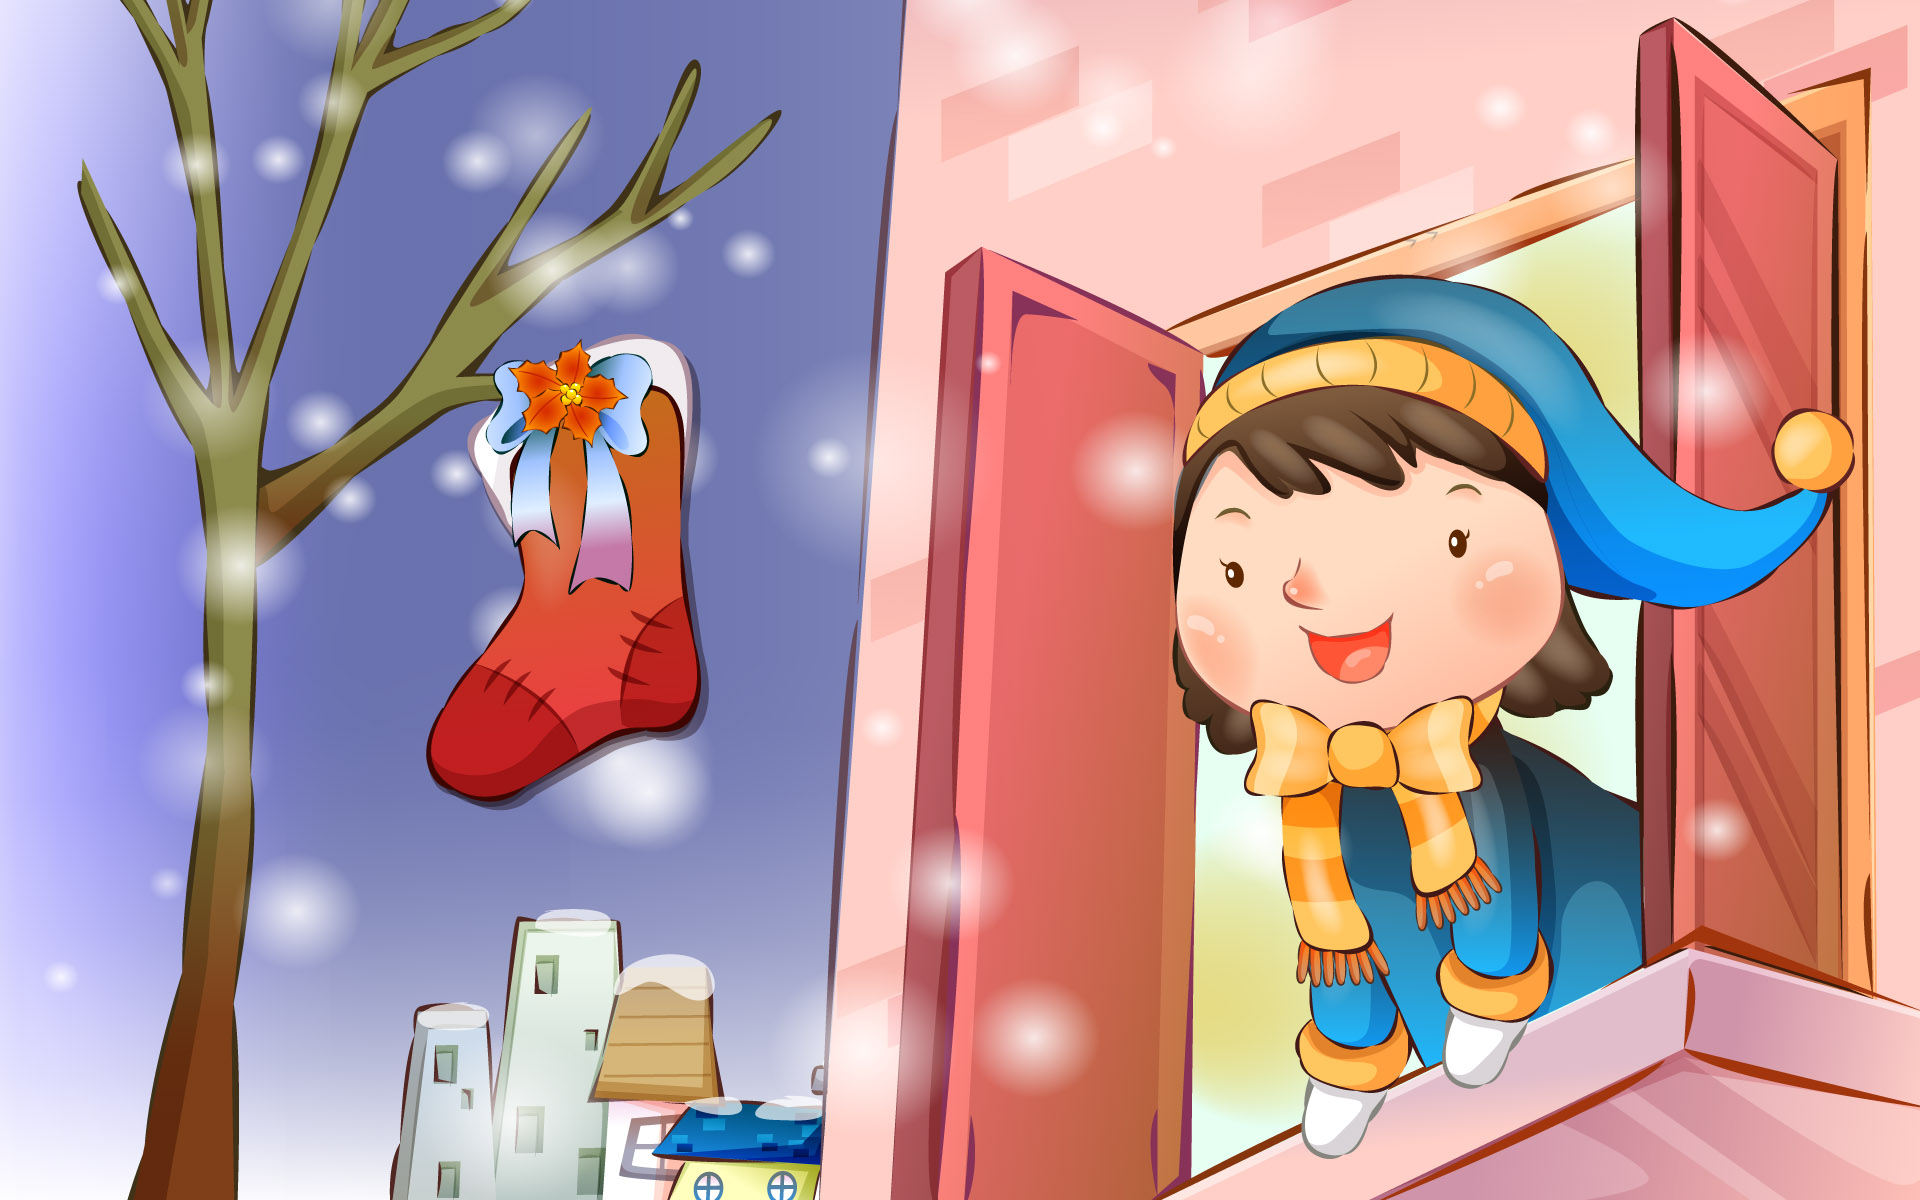 Happy childhood Christmas illustration articles 13714